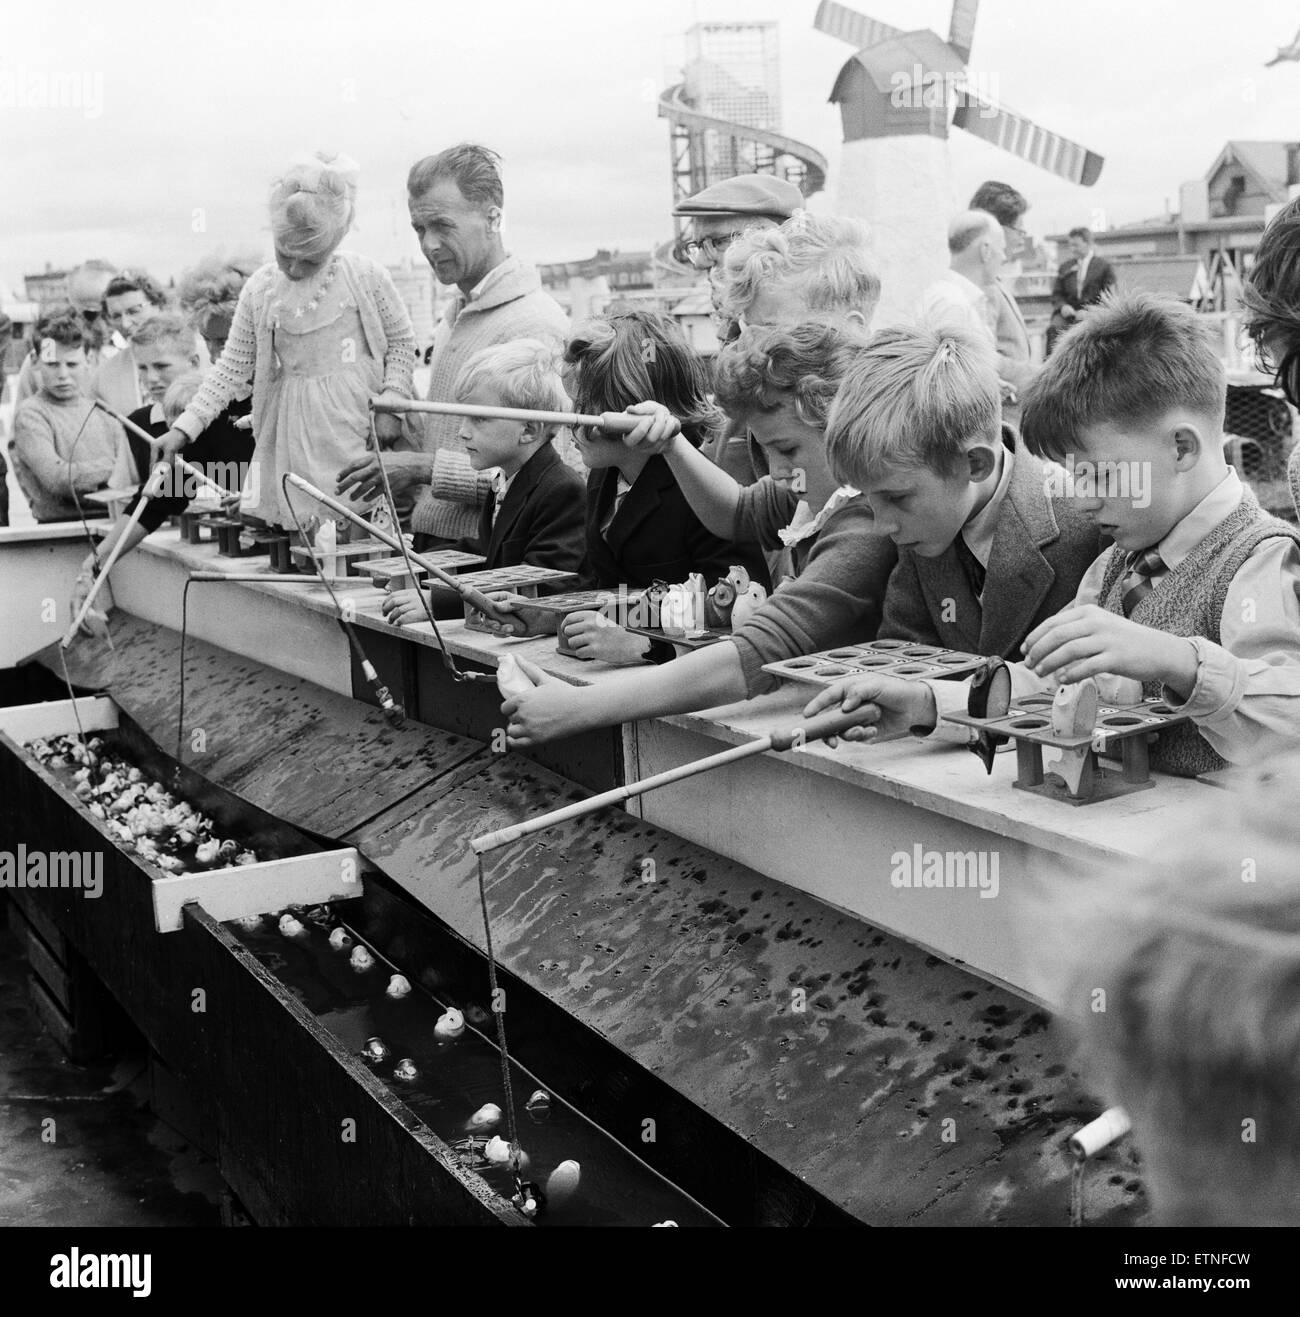 Southport, children fishing for lucky fish at the children's fairground, Merseyside. 5th August 1959. - Stock Image